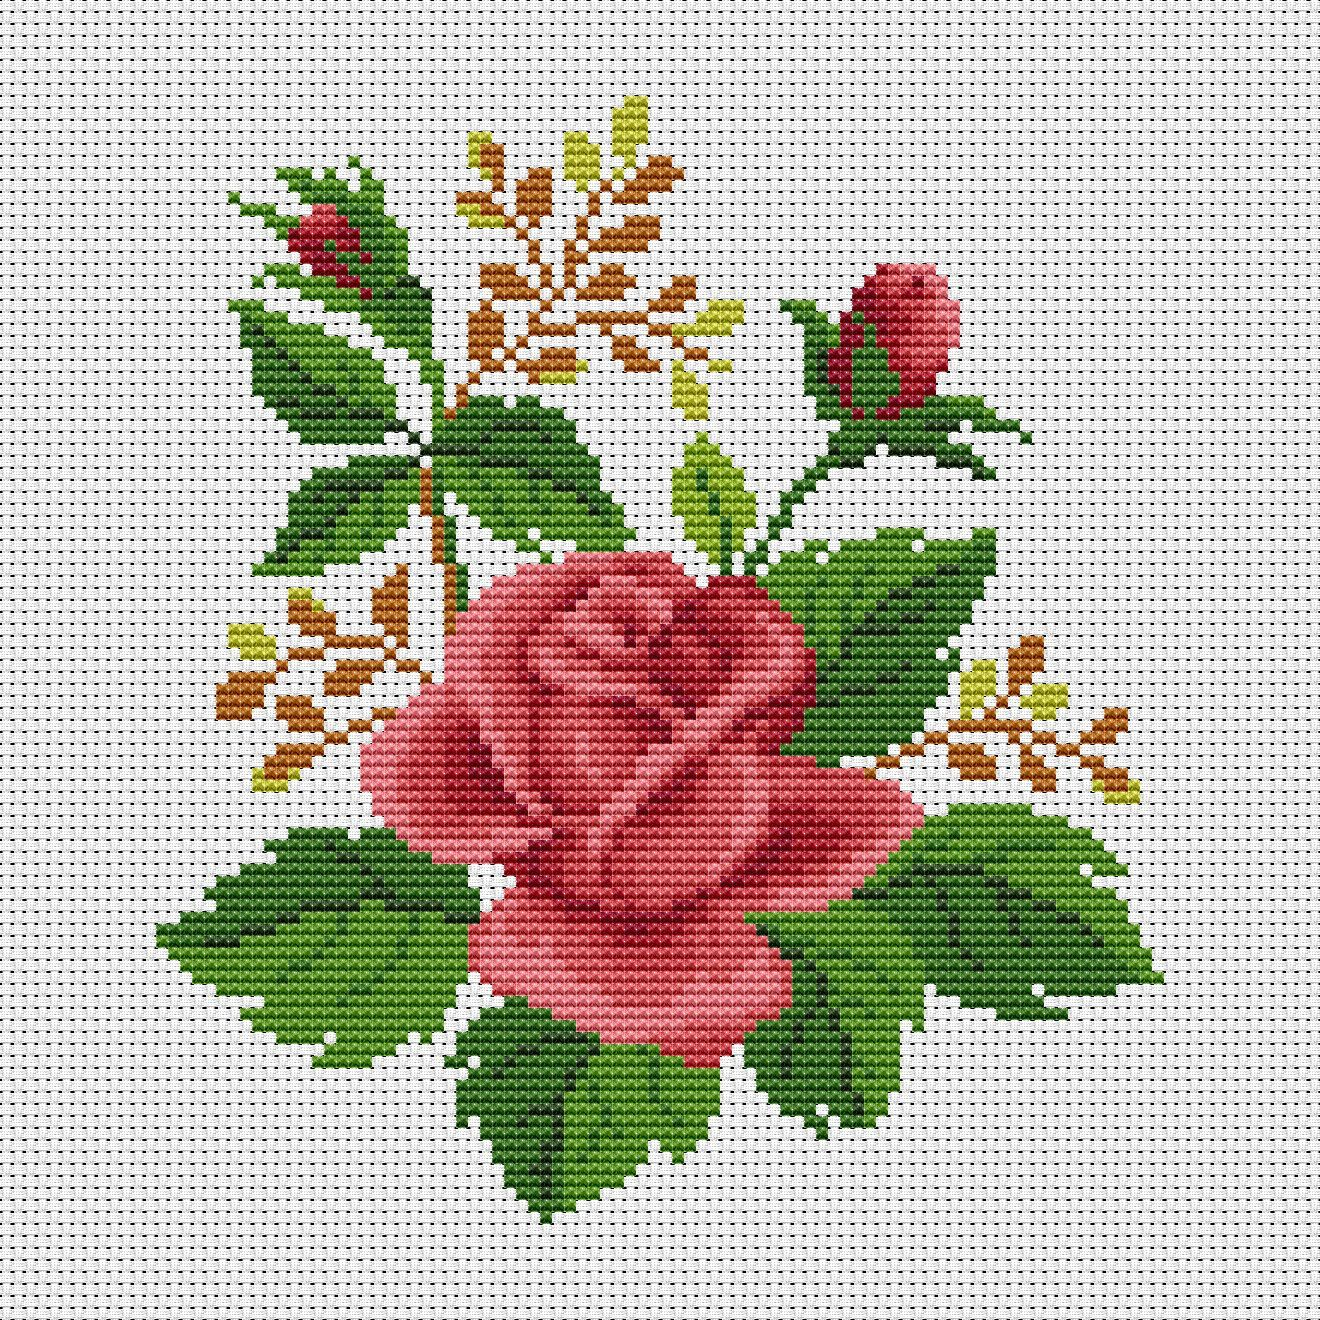 Letter B modern cross stitch pattern | Red roses cross stitch | Initial monogram cross stitch | Punto de cruz | Instant download PDF #863